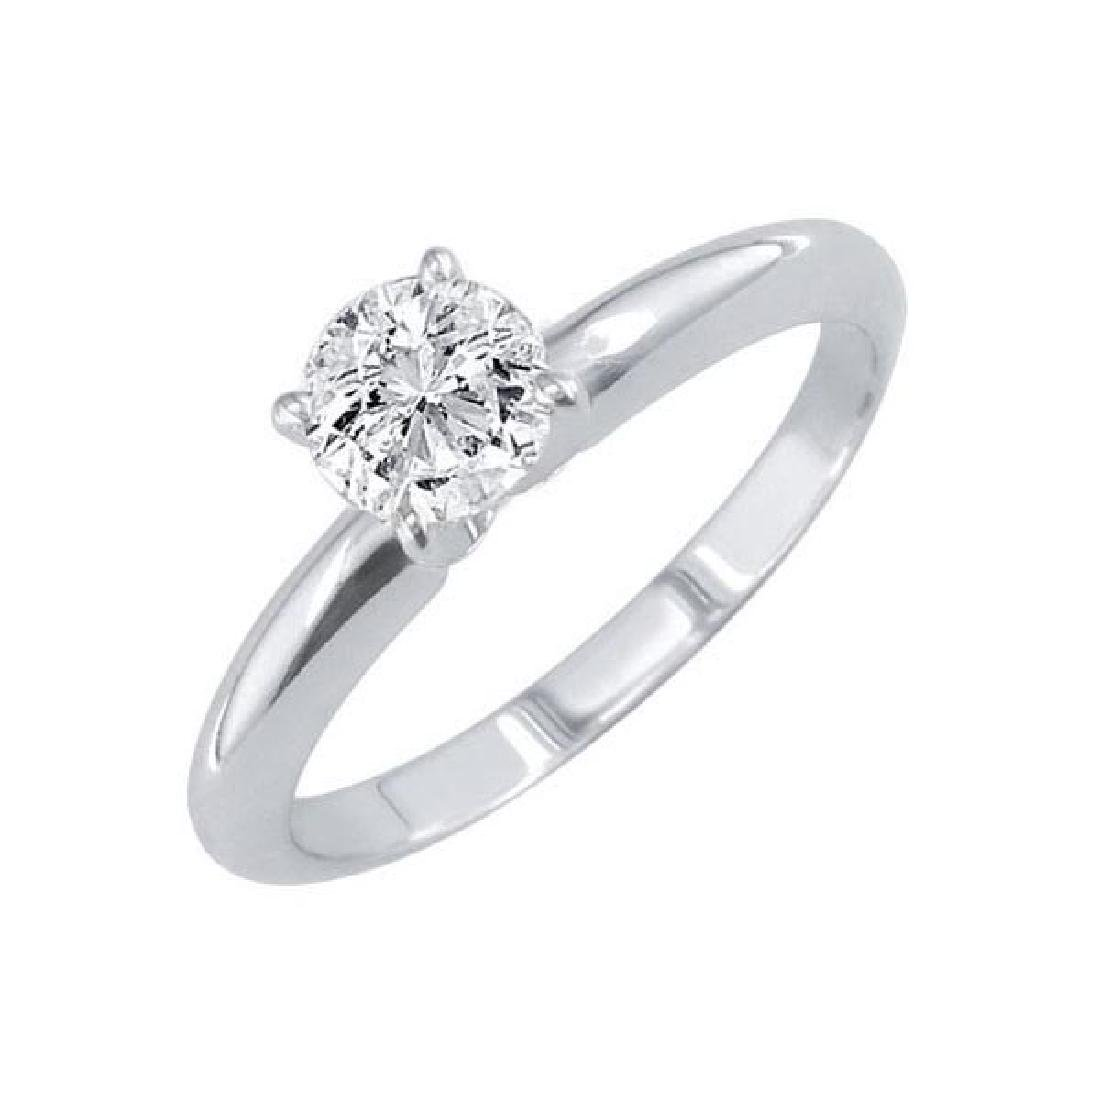 Certified 0.41 CTW Round Diamond Solitaire 14k Ring J/S